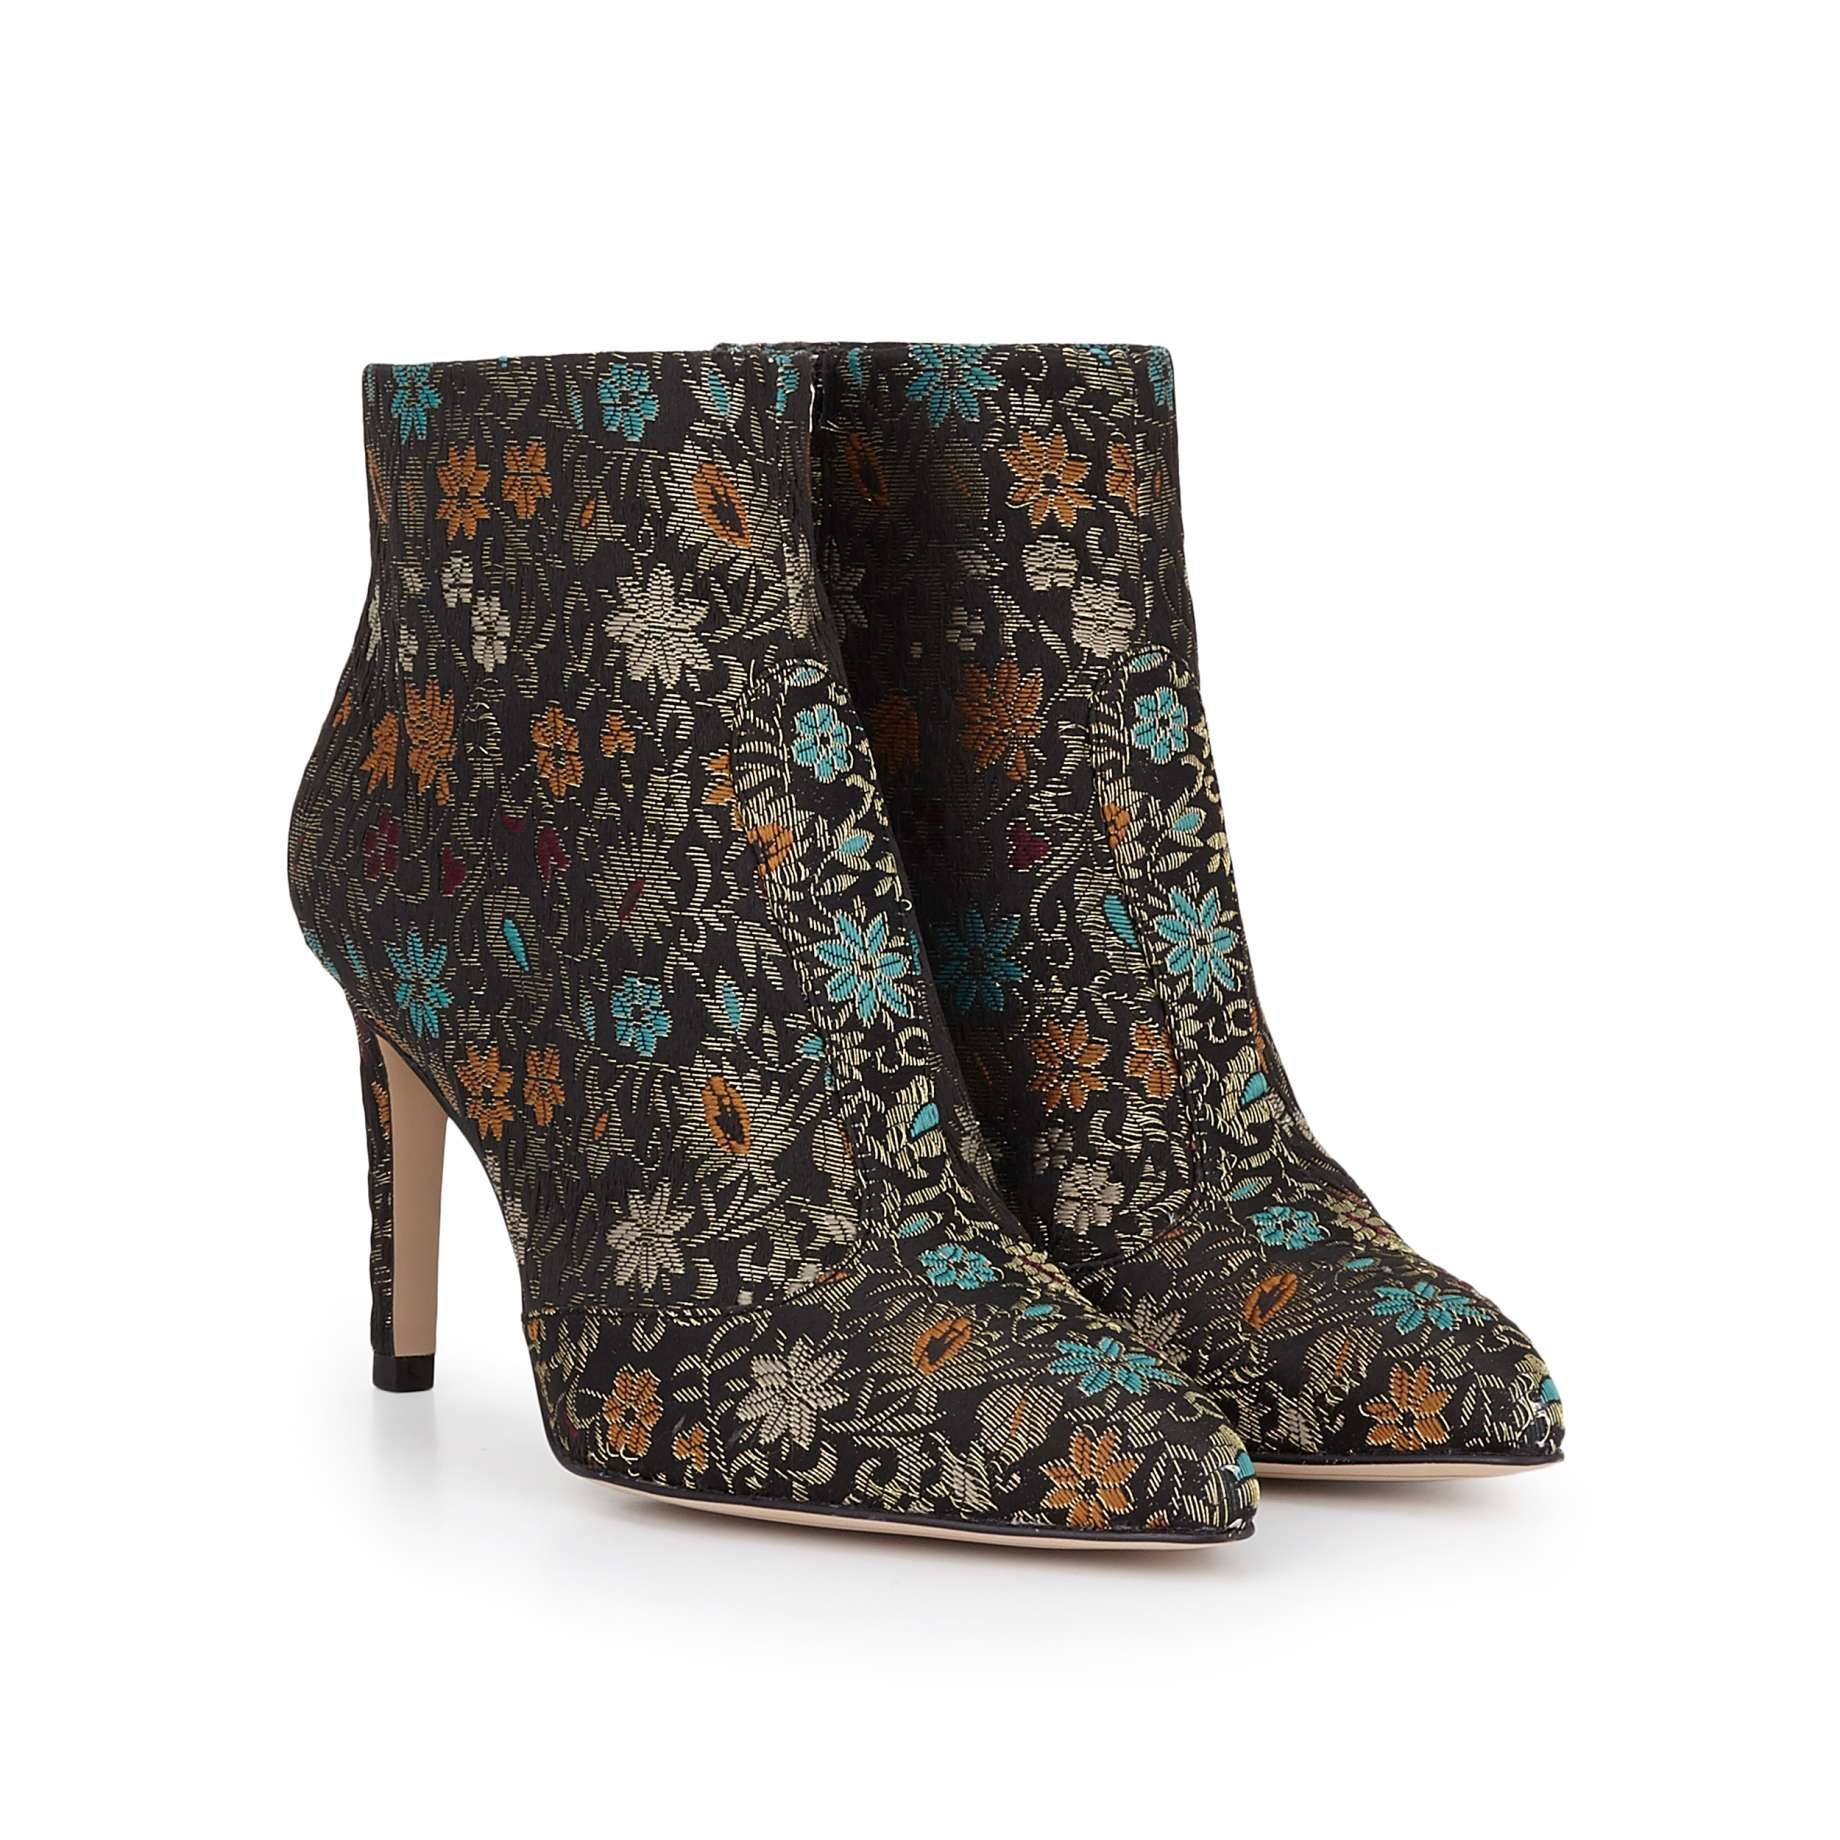 eaa30ef23439cf Olette Pointed Toe Bootie by Sam Edelman - Black Gold Brocade - View 1